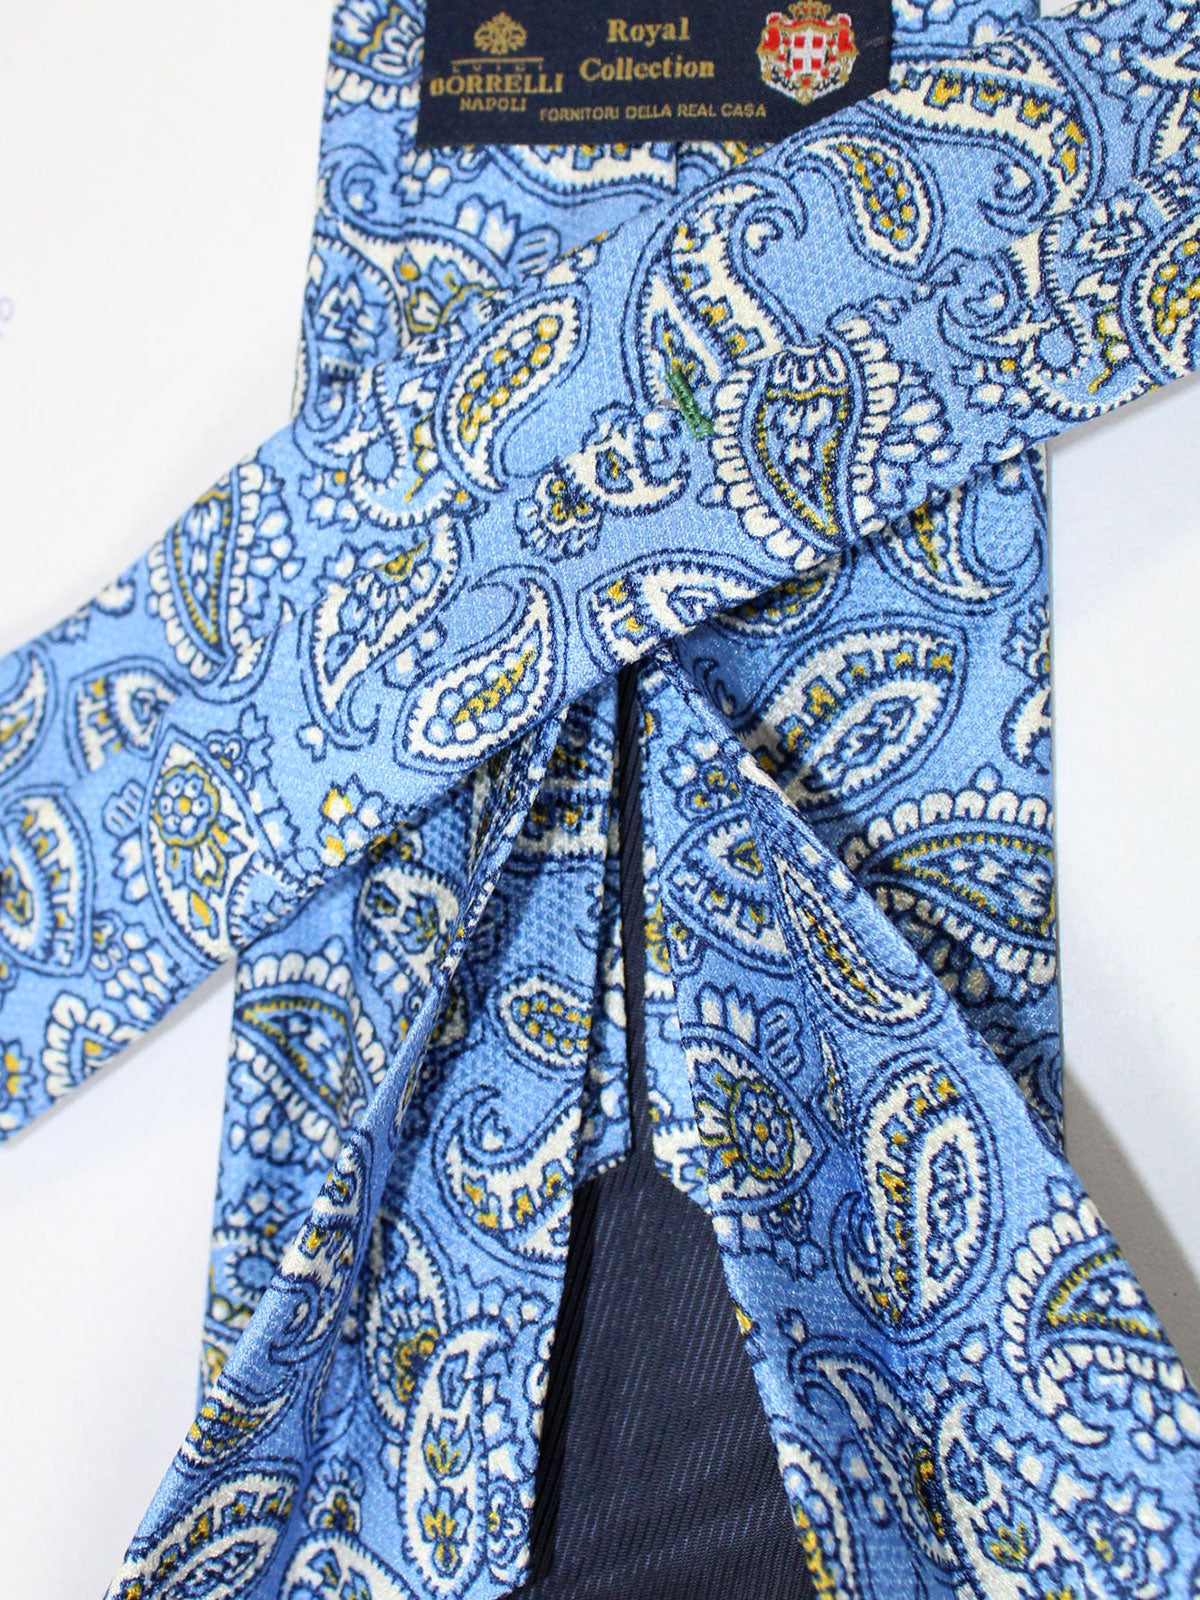 Luigi Borrelli 11 Fold Tie Blue Paisley ROYAL COLLECTION - Elevenfold Necktie